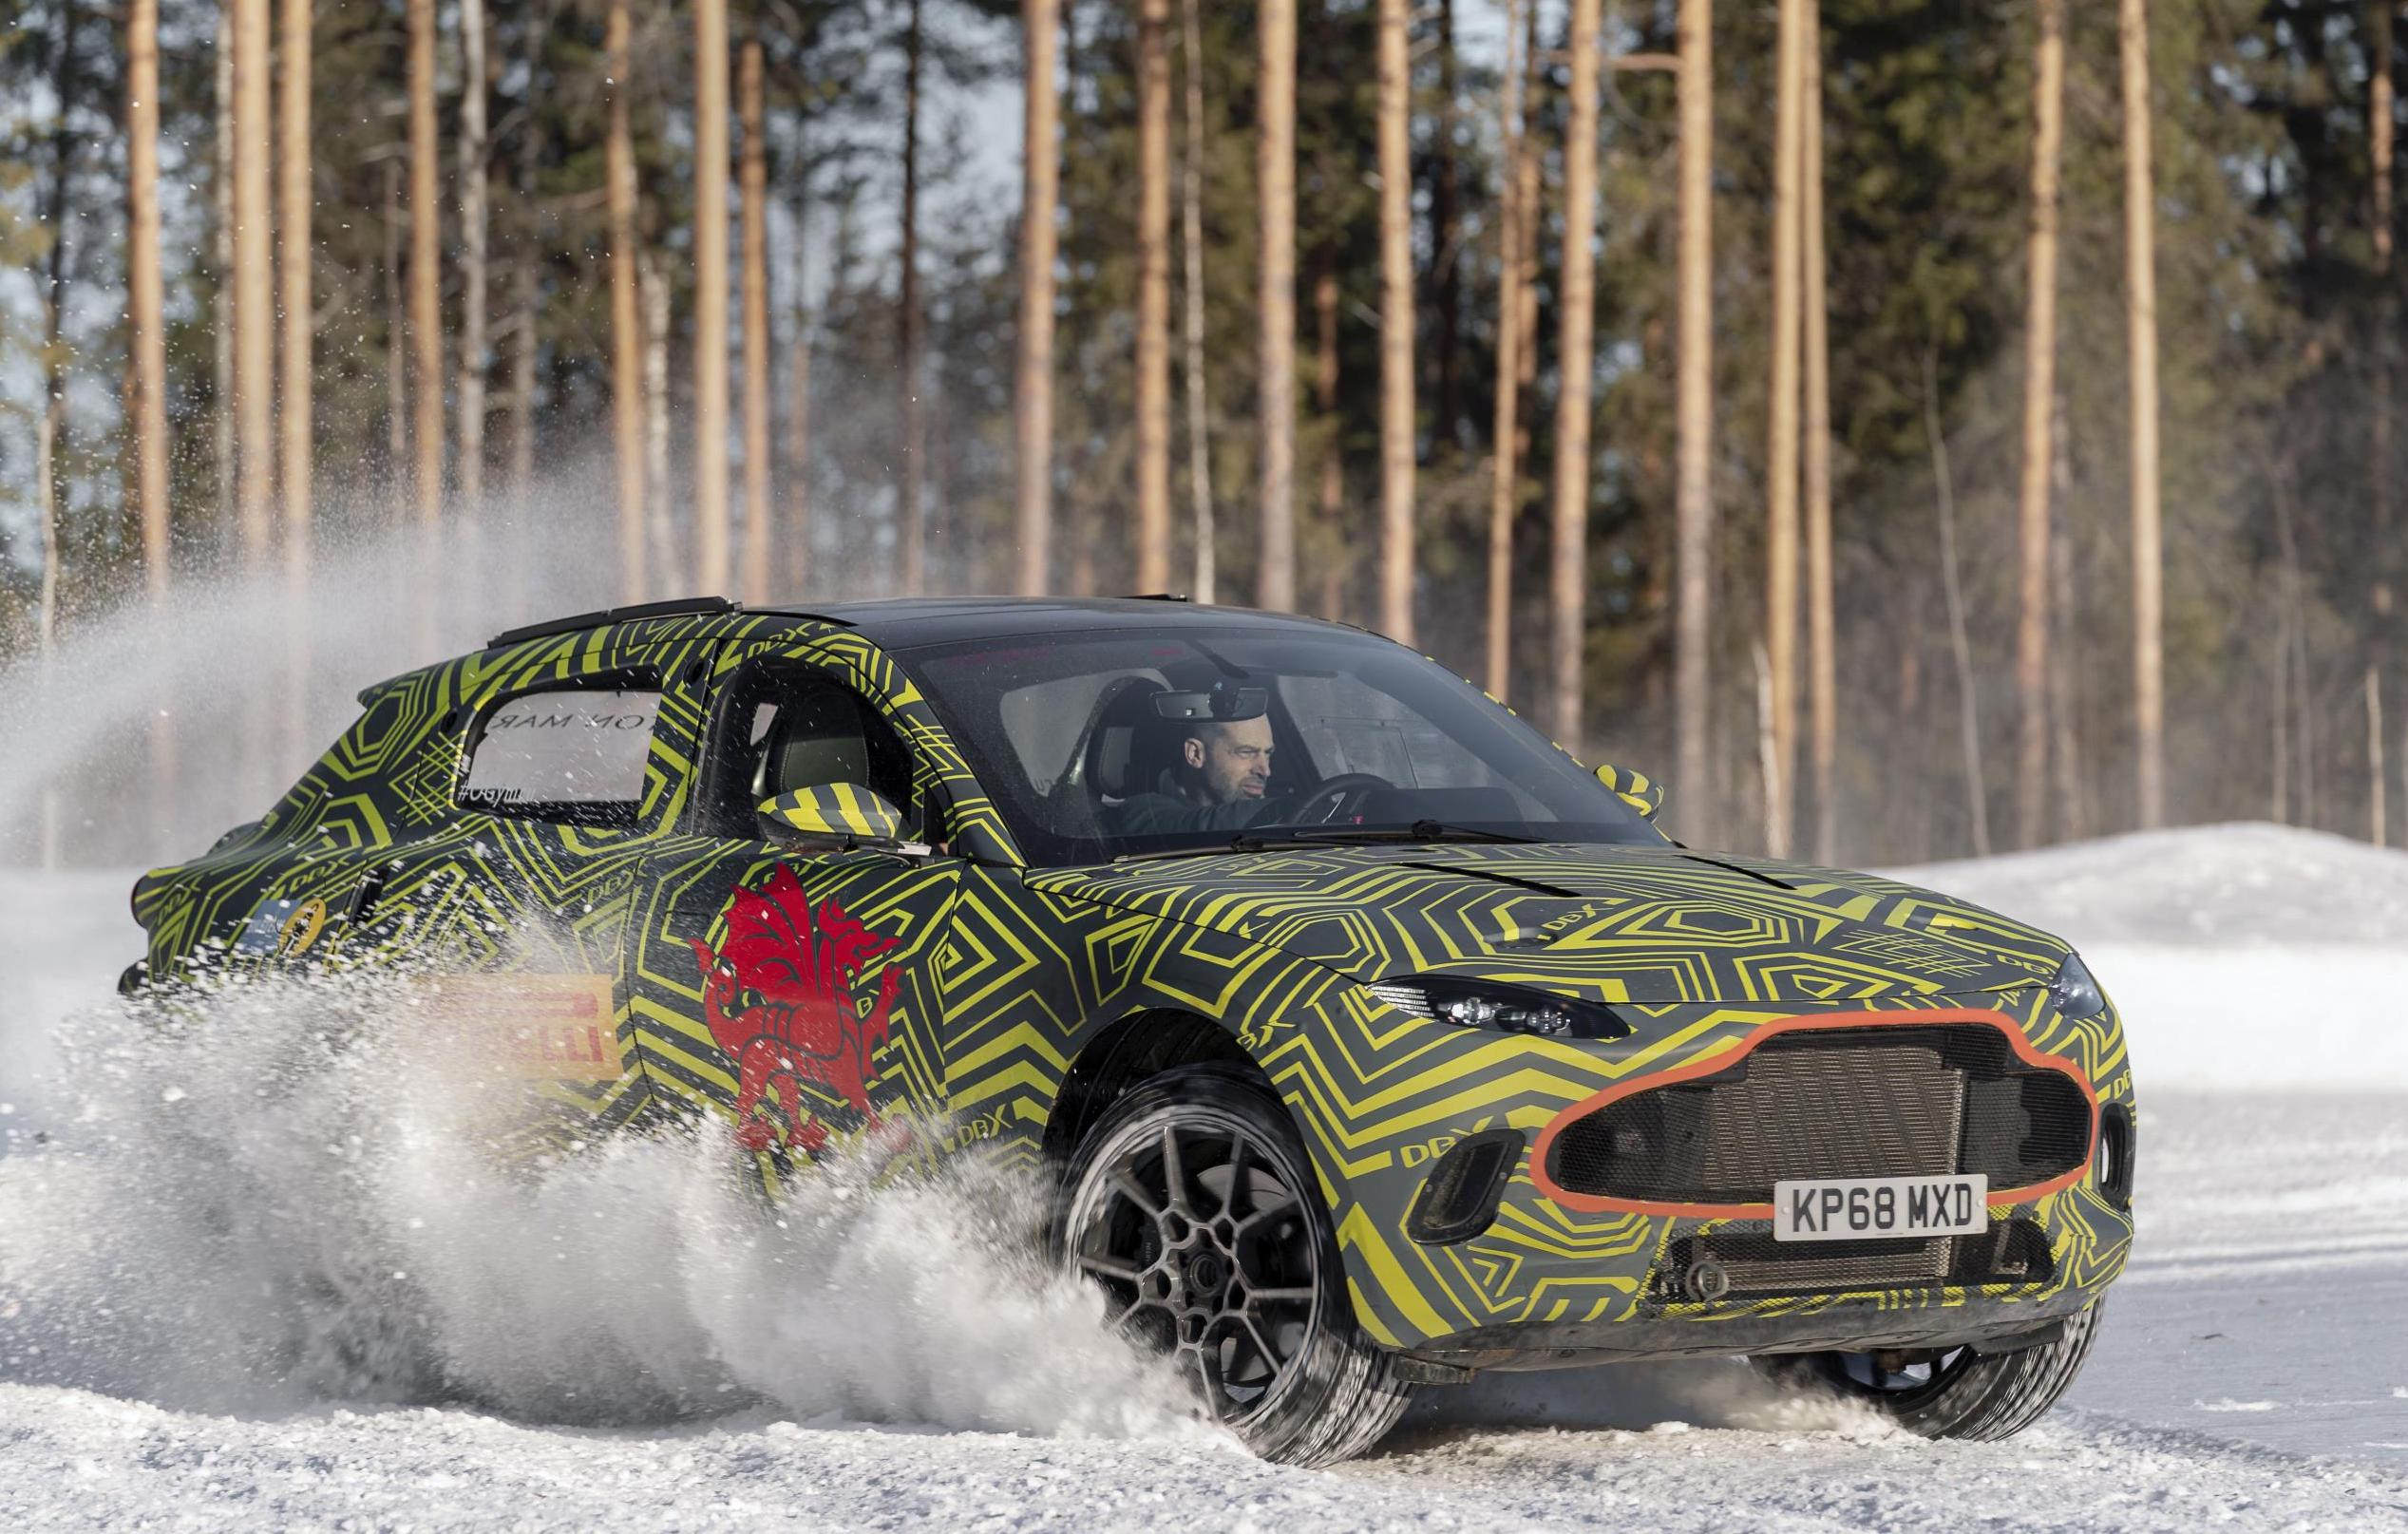 Aston Martin Dbx Suv Testing Moves To Freezing Conditions Video Performancedrive